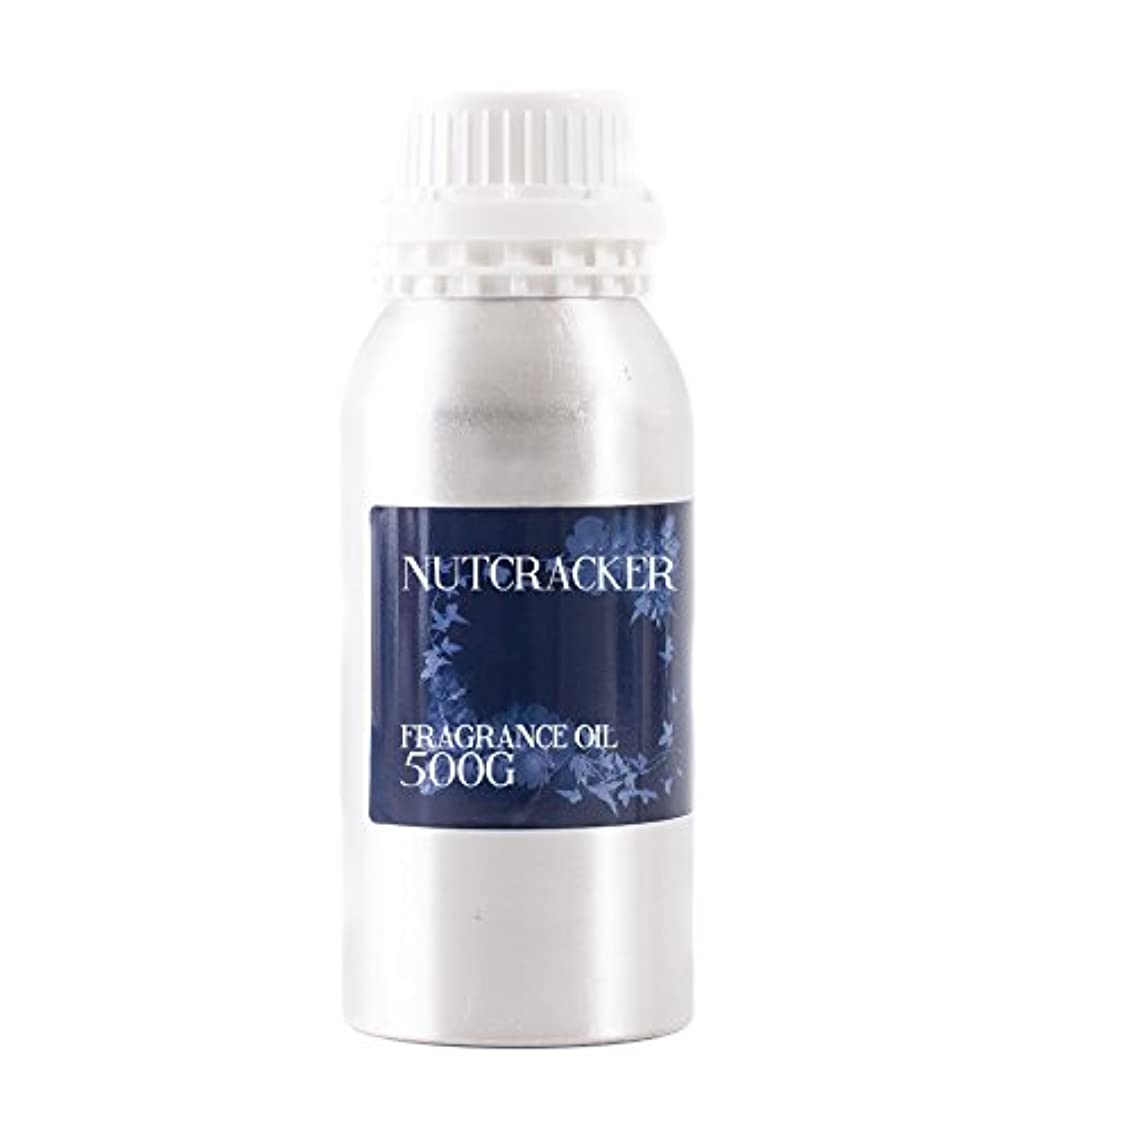 サーキットに行く複数イースターMystic Moments | Nutcracker Fragrance Oil - 500g